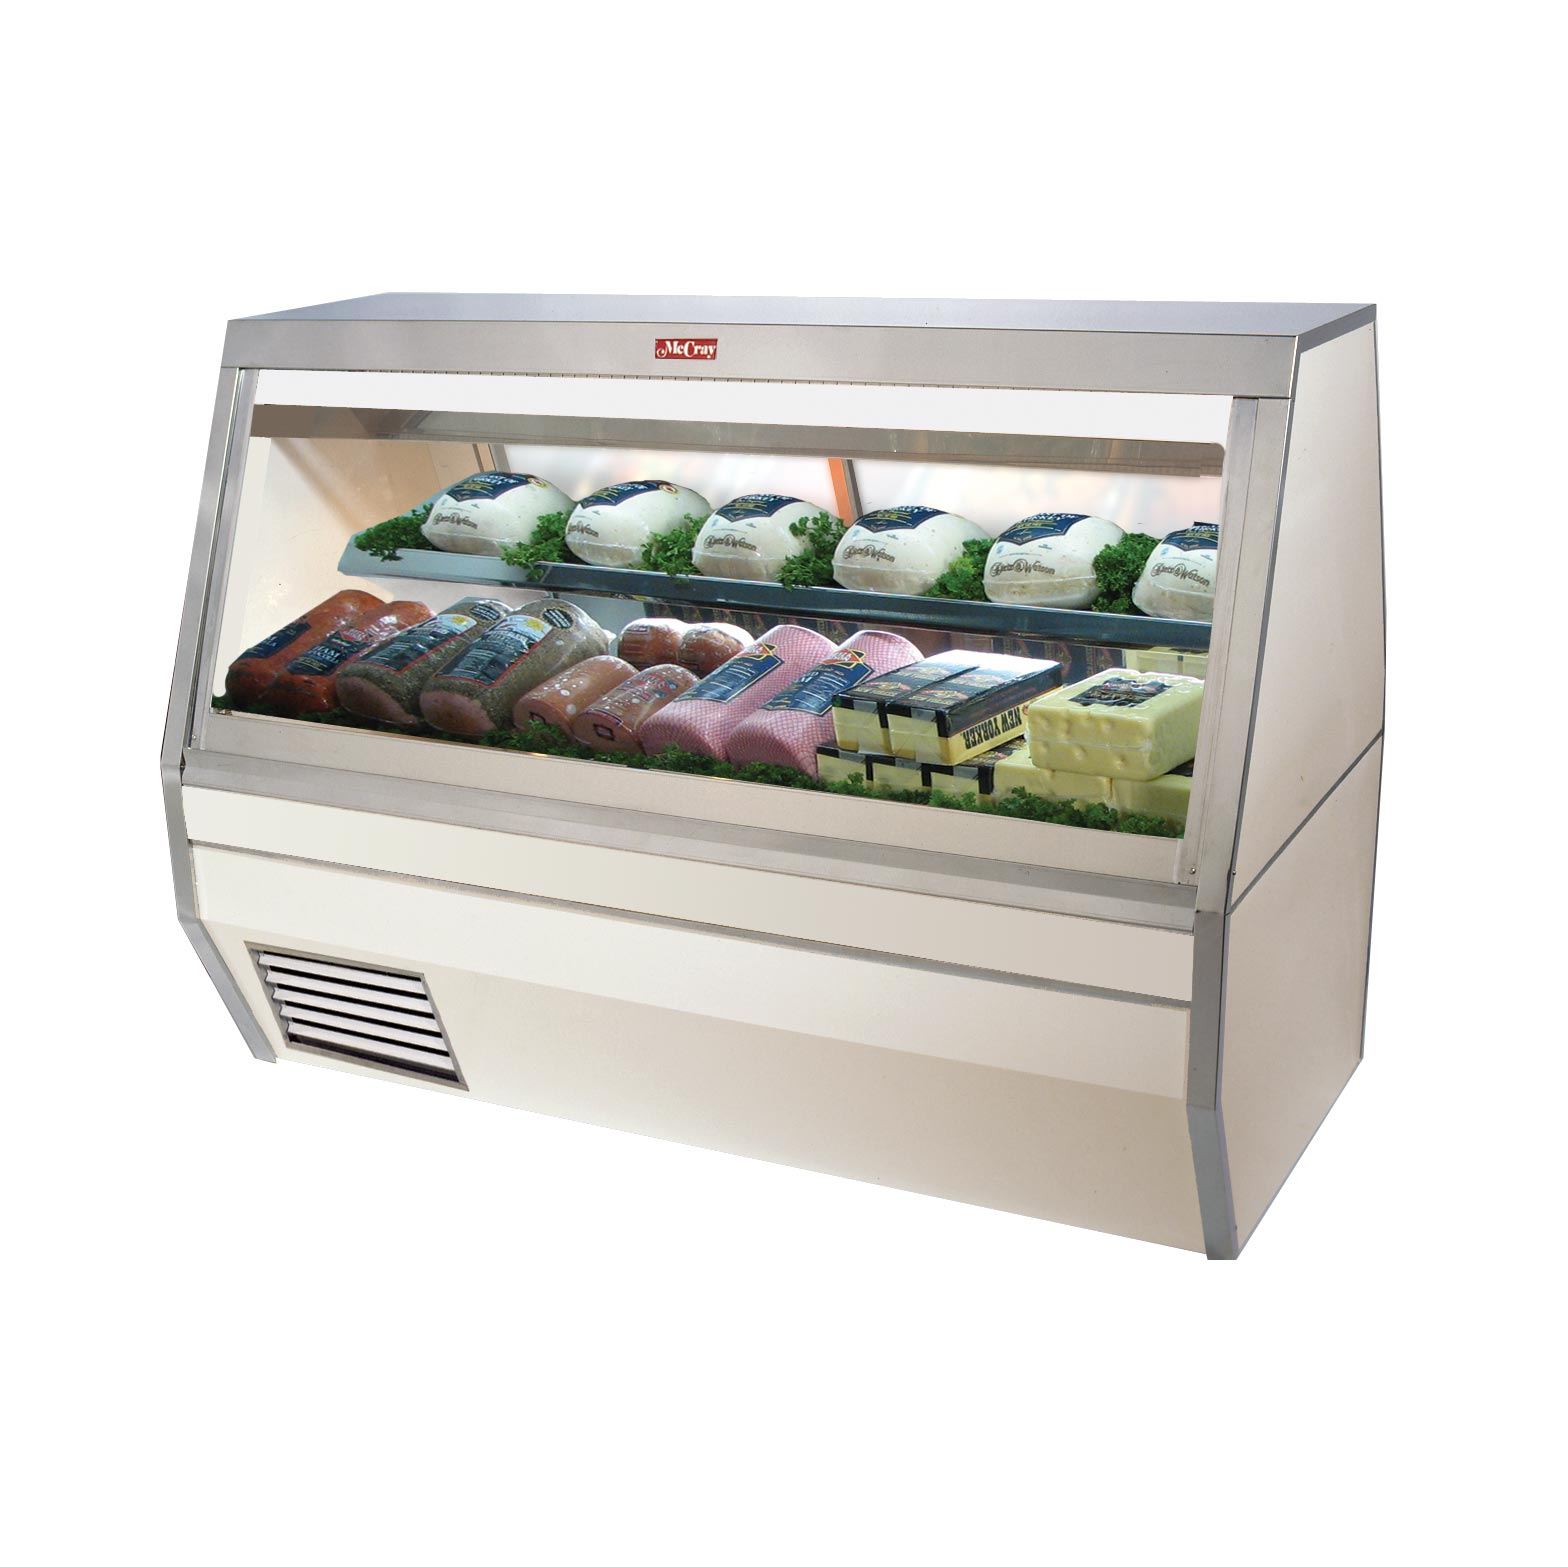 Howard-McCray SC-CDS35-8L-LED display case, refrigerated deli